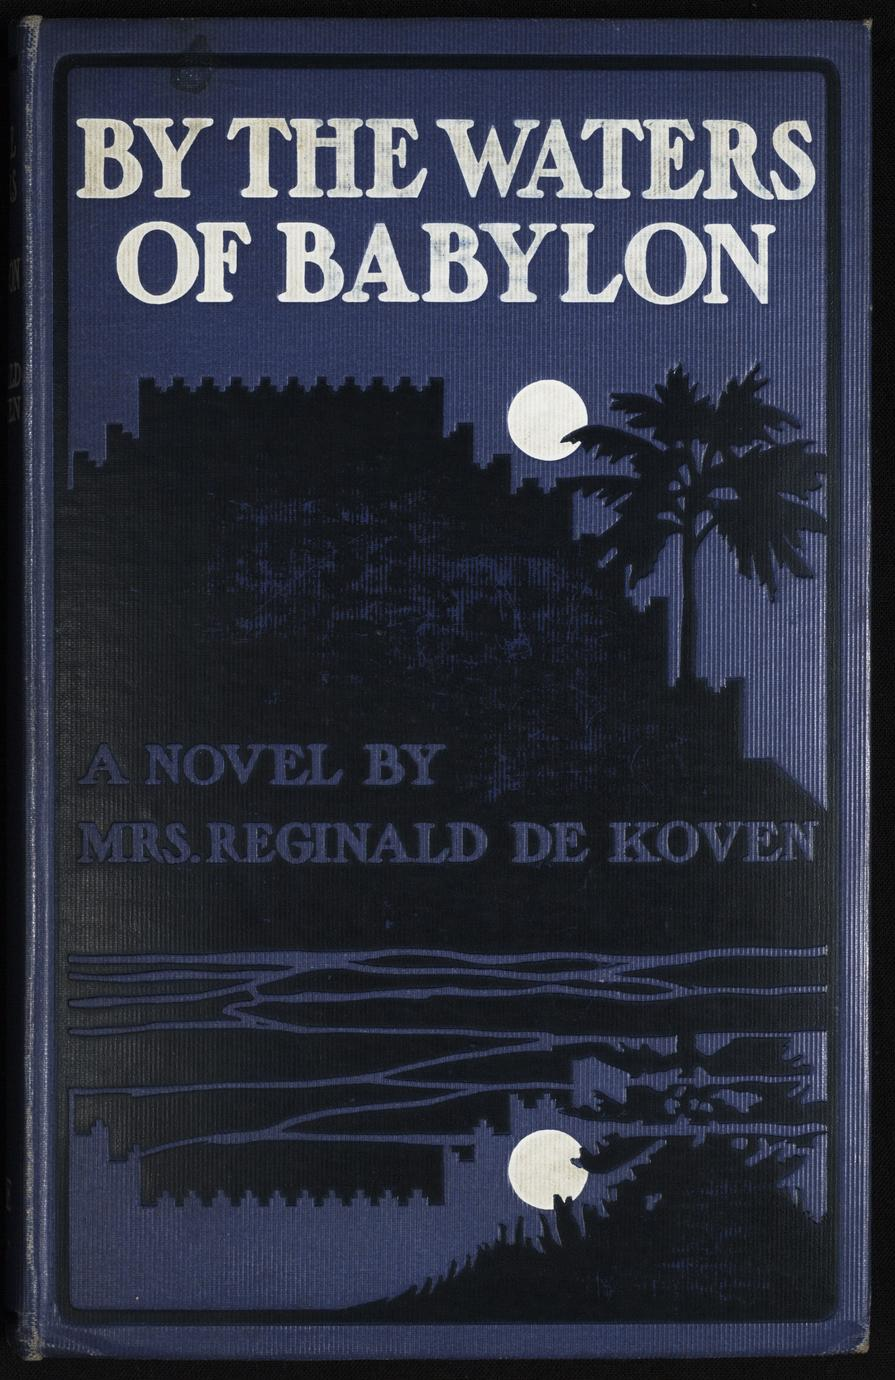 By the waters of Babylon (1 of 2)